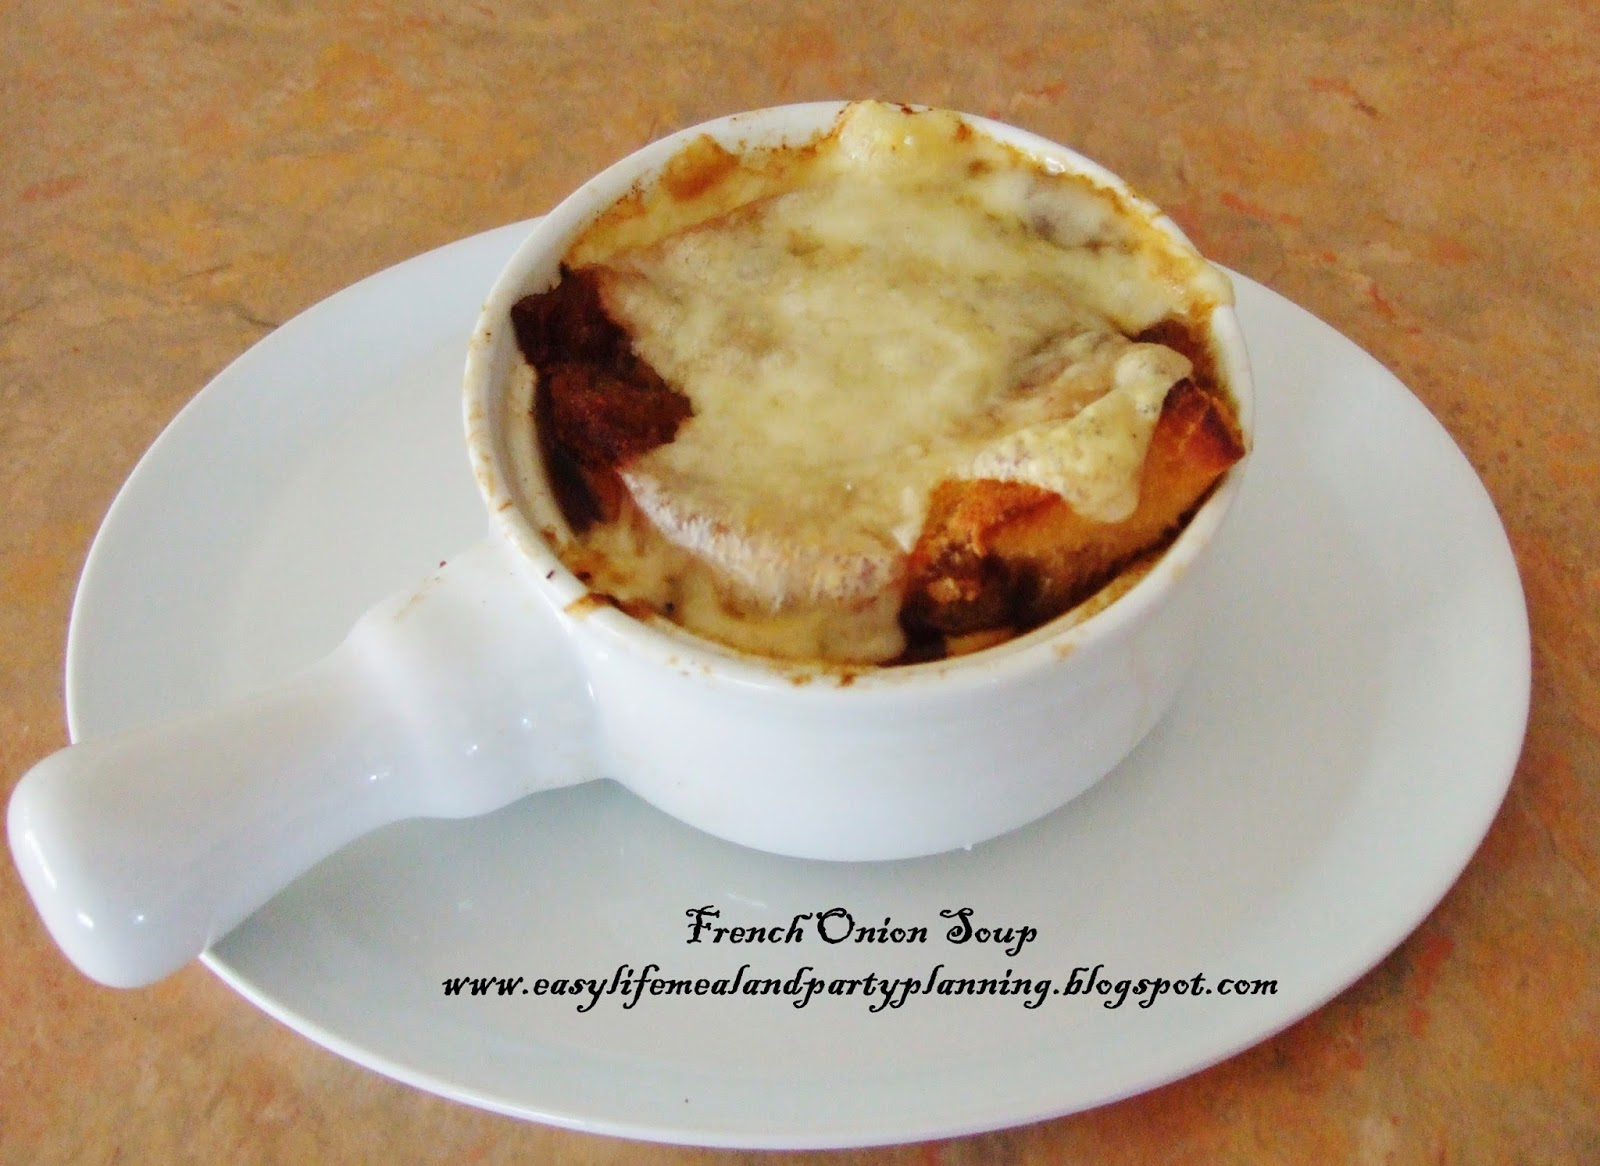 French Onion Soup by Easy Life Meal and Party Planning